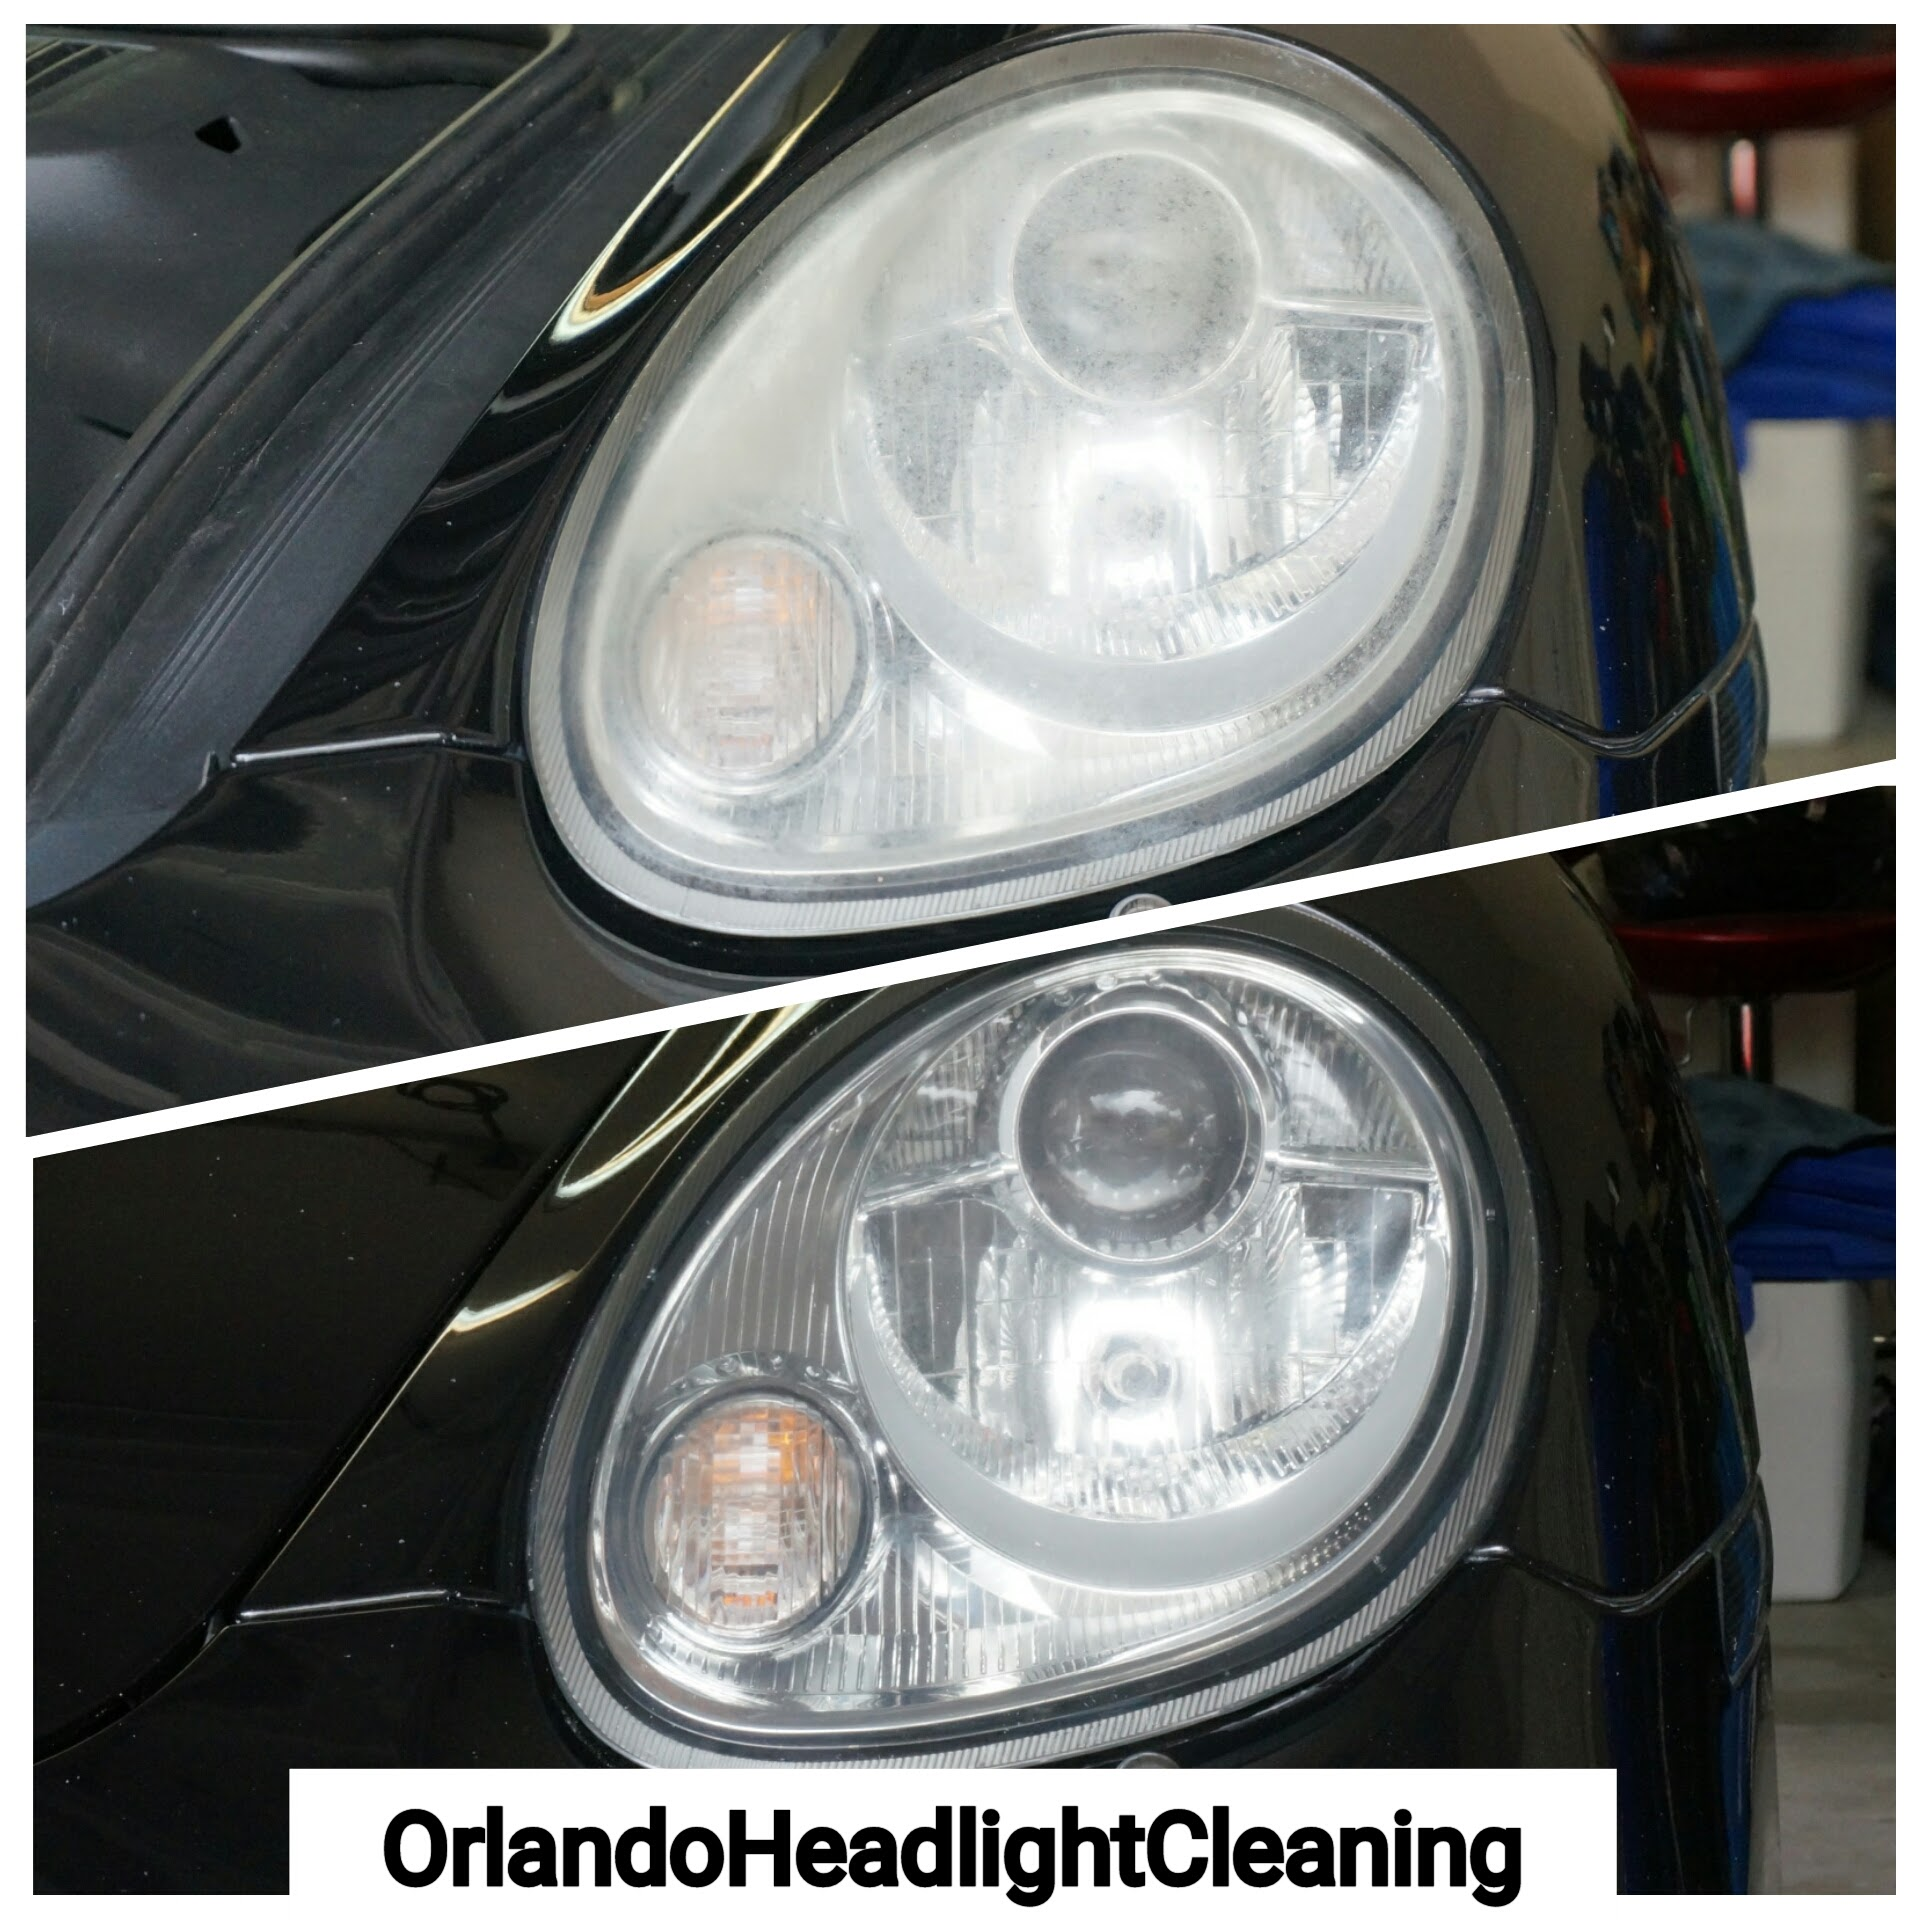 Headlight Restoration Photo Gallery » on 2006 nissan sentra s, 2006 chrysler sebring s, sapphire blue cayman s, 2006 toyota corolla s, 2006 mazda tribute s, 2006 scion tc s, 2006 lotus exige s, 2006 nissan pathfinder s, green cayman s, techart cayman s, silver cayman s, 2006 aston martin vanquish s, 2006 ford gt s,